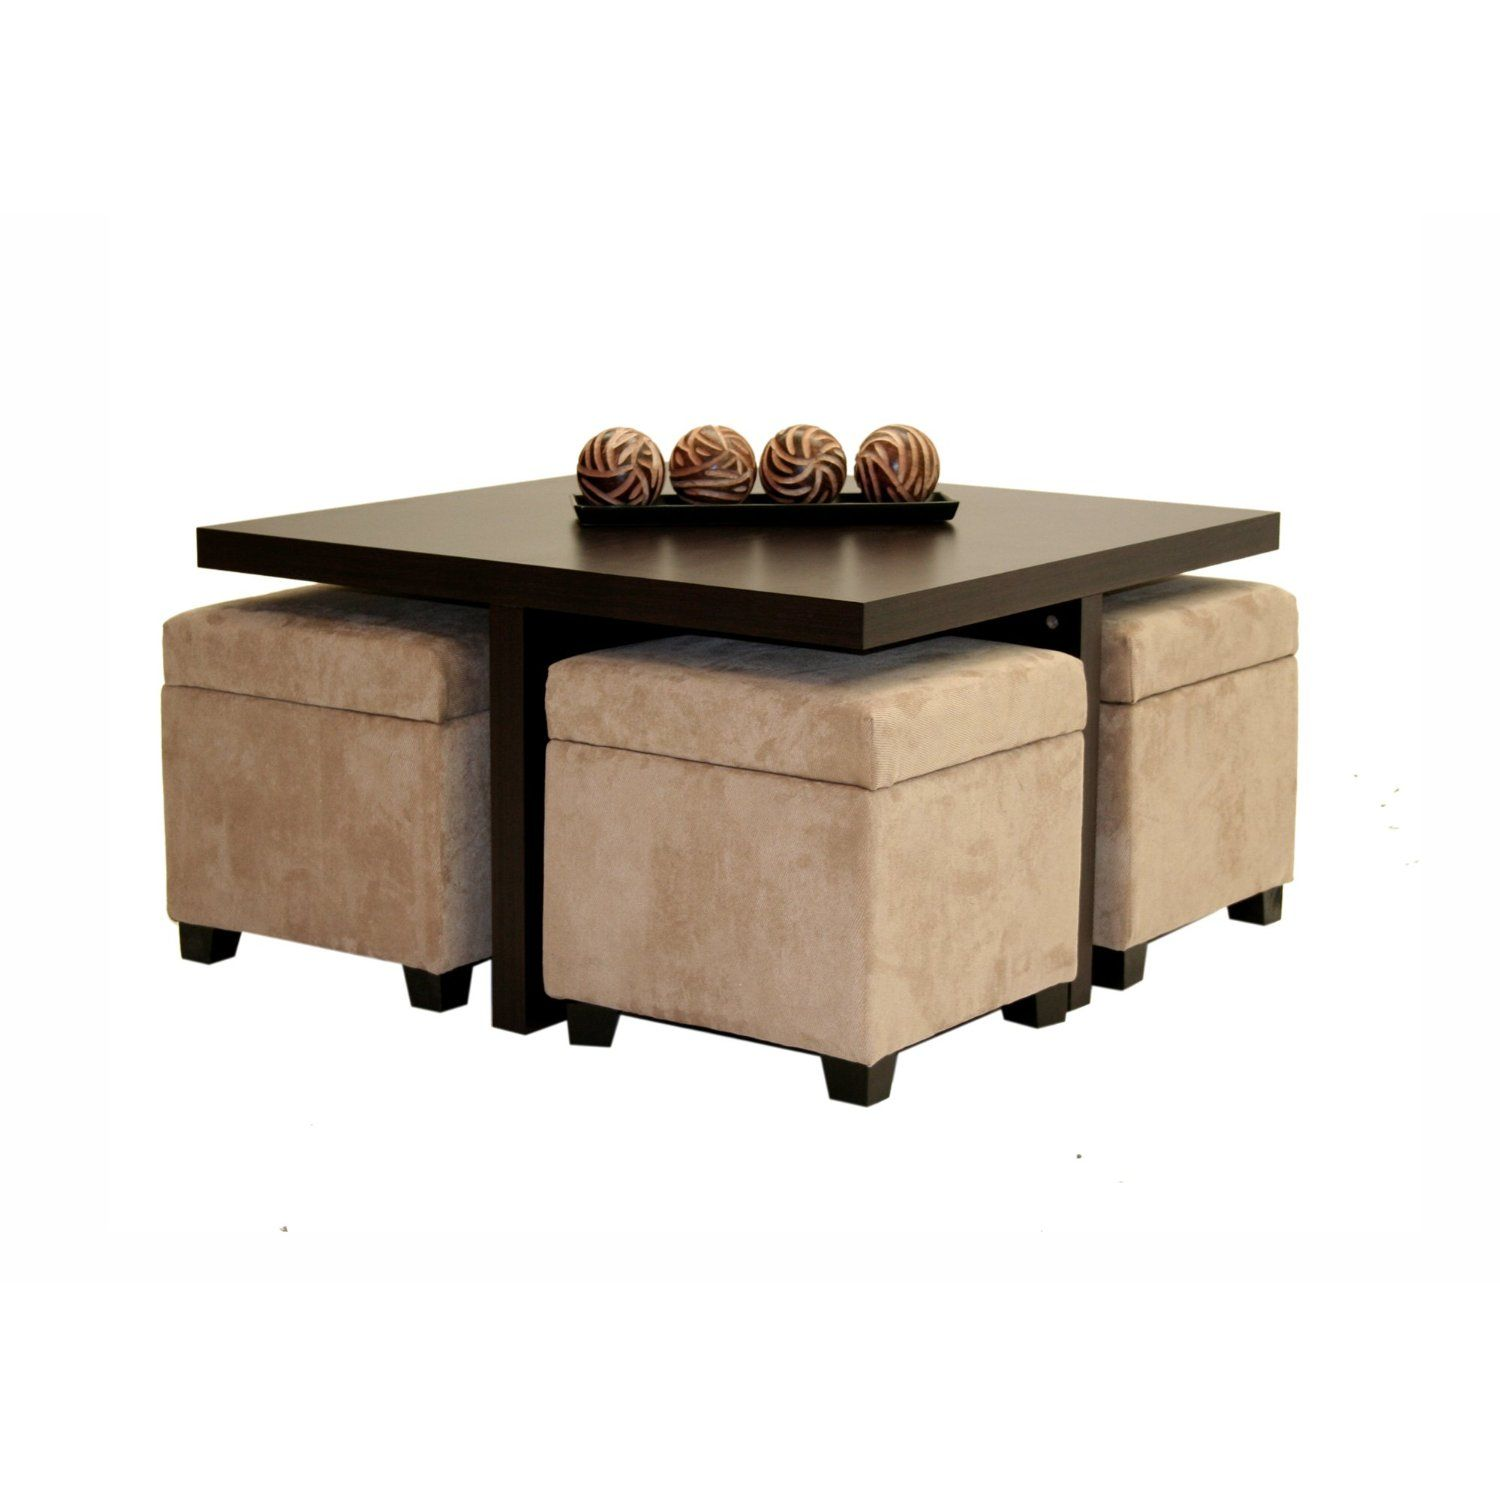 This Looks Like It Would Match Our Living Room Couch Chair Really Well Coffee Table W 4 Storage Ot Coffee Table With Seating Coffee Table Ottoman Coffee Table [ jpg ]